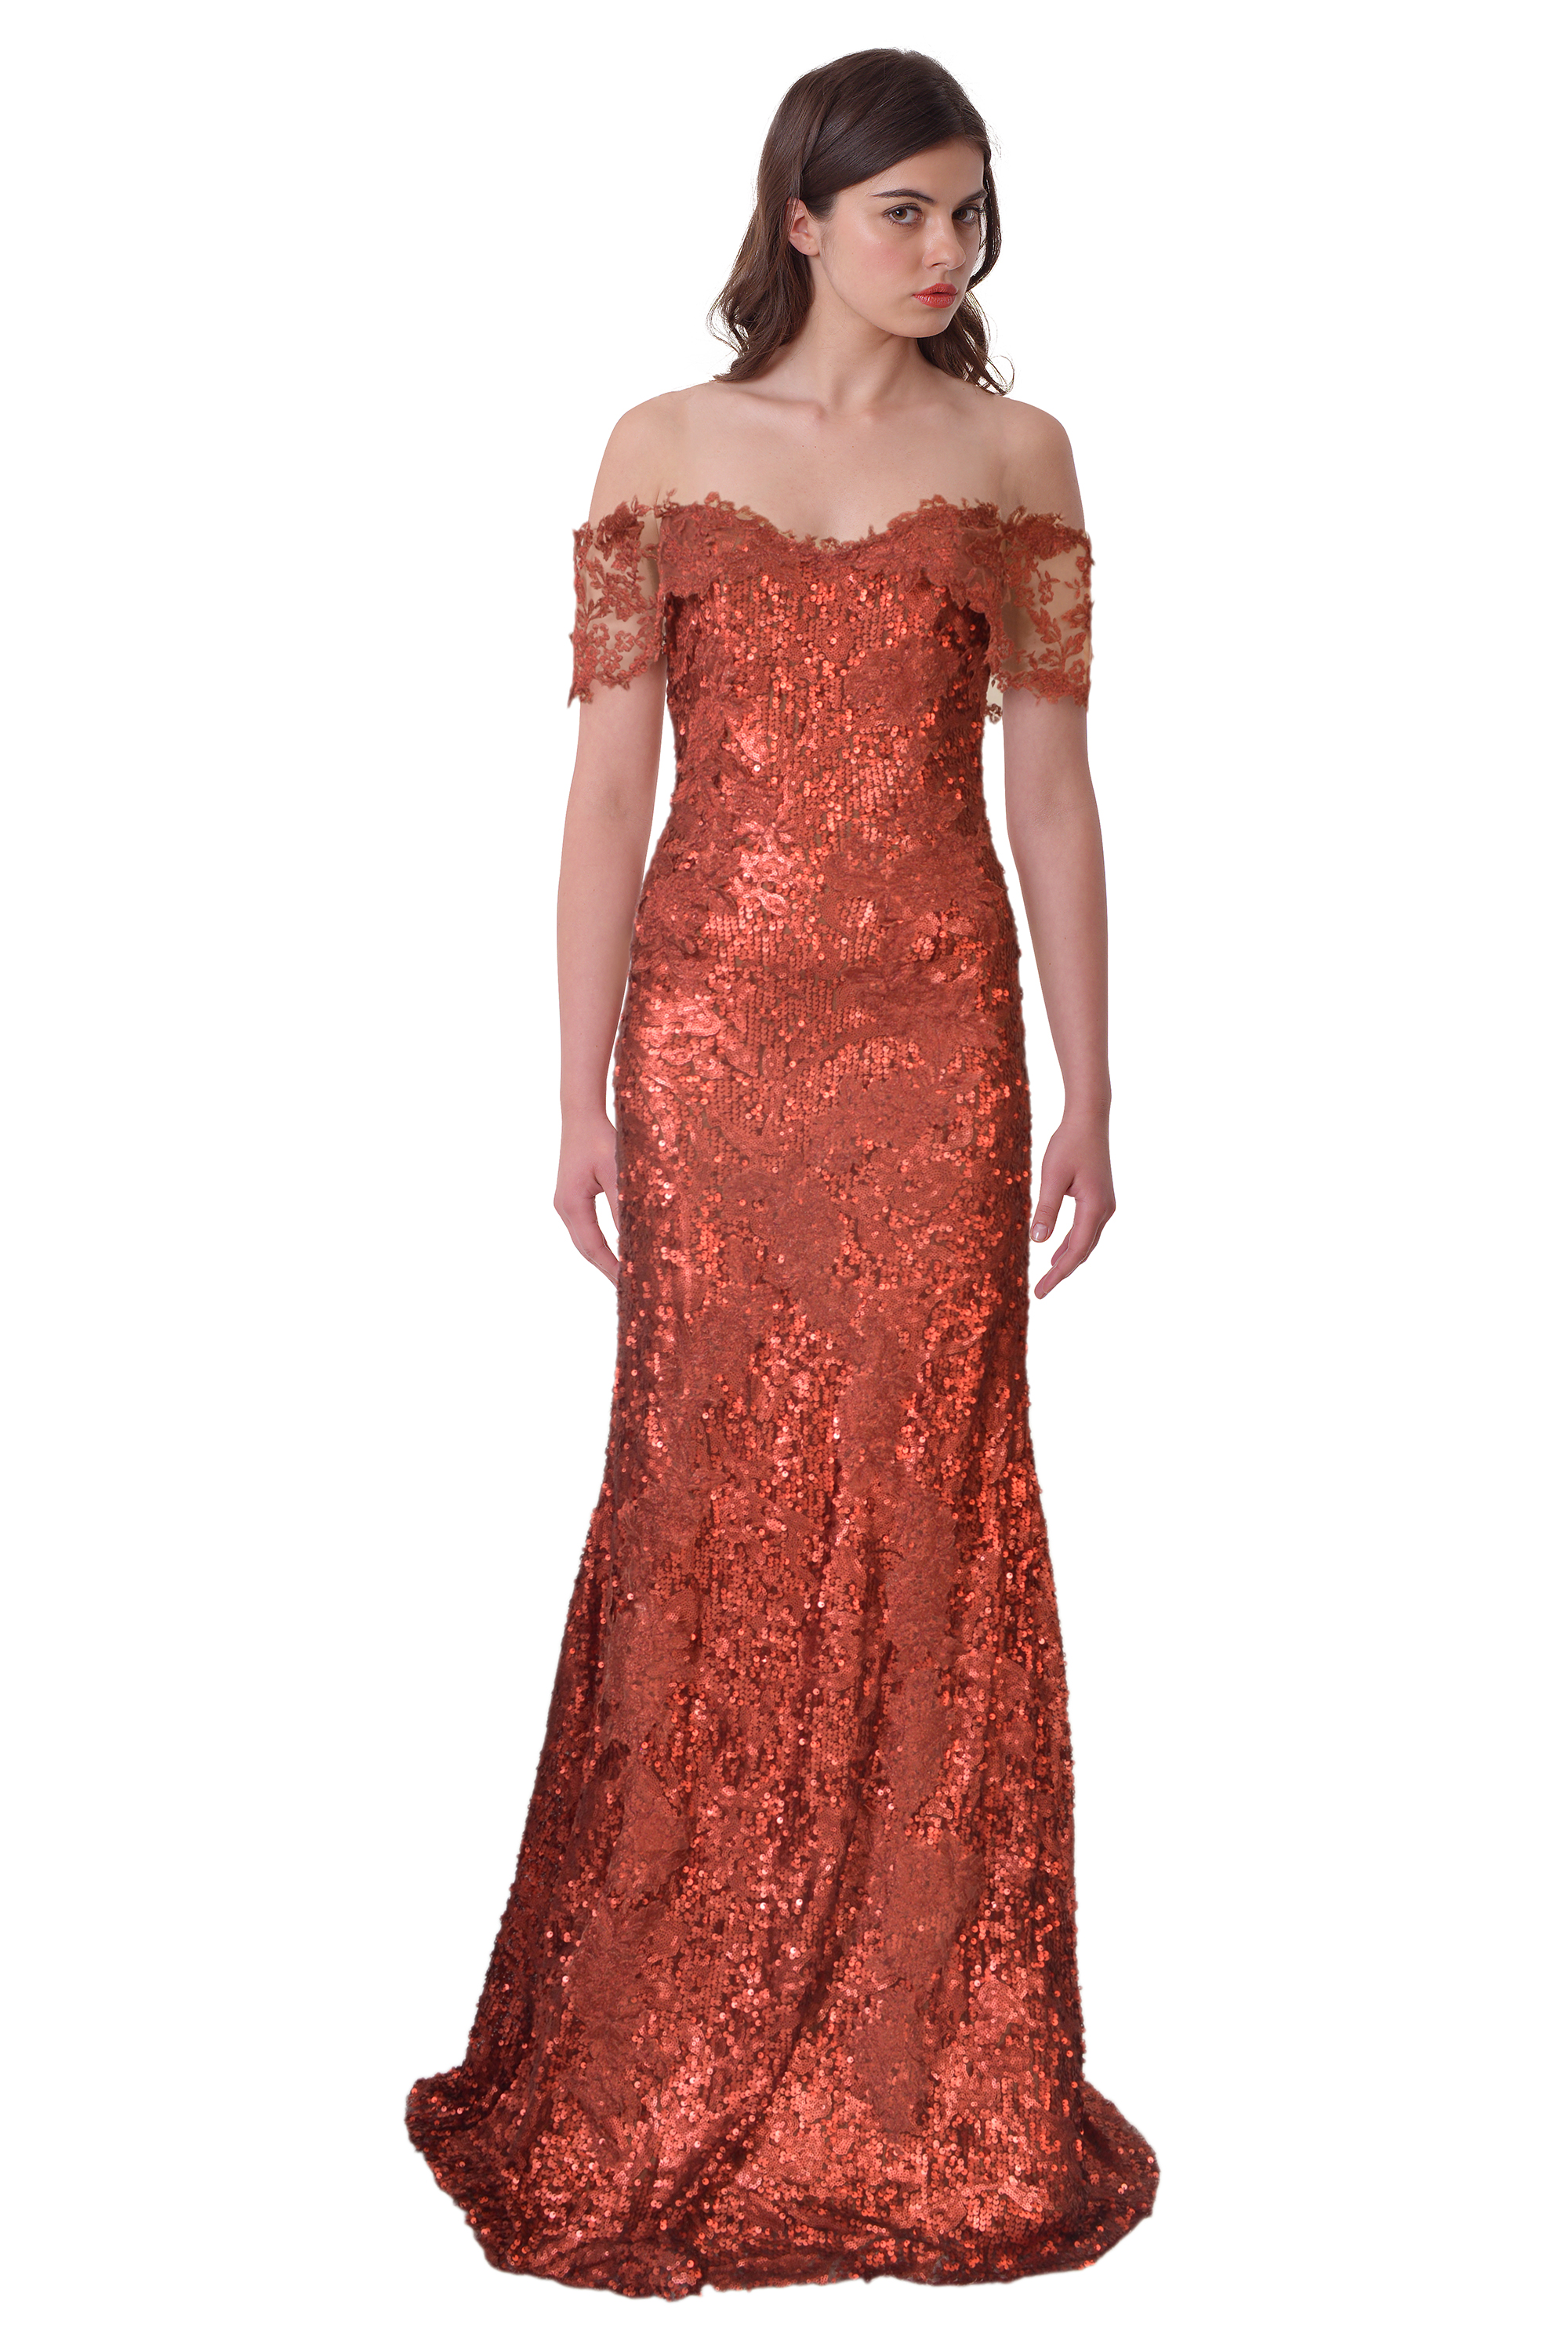 Rene Ruiz Red Off Shoulder Metallic Sequined Ball Evening Gown Dress ...